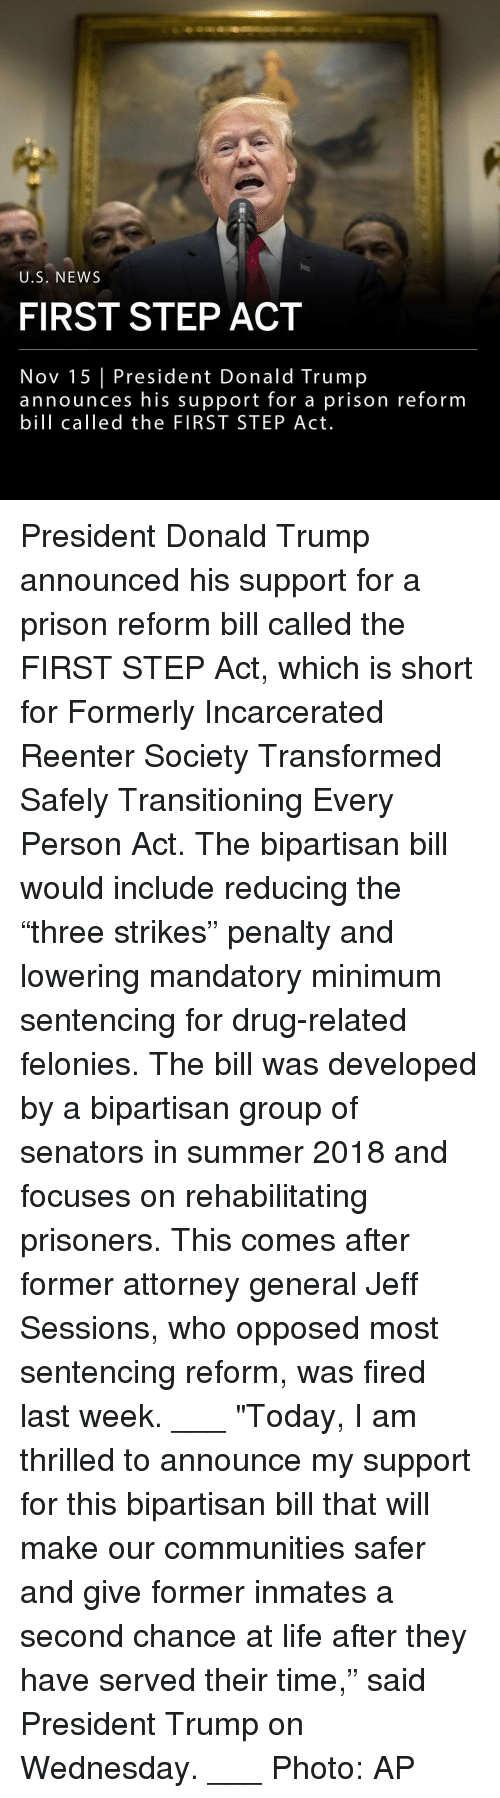 "Donald Trump, Life, and Memes: U.S. NEWS  FIRST STEP ACT  Nov 15 President Donald Trump  announces his support for a prison reform  bill called the FIRST STEP Act. President Donald Trump announced his support for a prison reform bill called the FIRST STEP Act, which is short for Formerly Incarcerated Reenter Society Transformed Safely Transitioning Every Person Act. The bipartisan bill would include reducing the ""three strikes"" penalty and lowering mandatory minimum sentencing for drug-related felonies. The bill was developed by a bipartisan group of senators in summer 2018 and focuses on rehabilitating prisoners. This comes after former attorney general Jeff Sessions, who opposed most sentencing reform, was fired last week. ___ ""Today, I am thrilled to announce my support for this bipartisan bill that will make our communities safer and give former inmates a second chance at life after they have served their time,"" said President Trump on Wednesday. ___ Photo: AP"